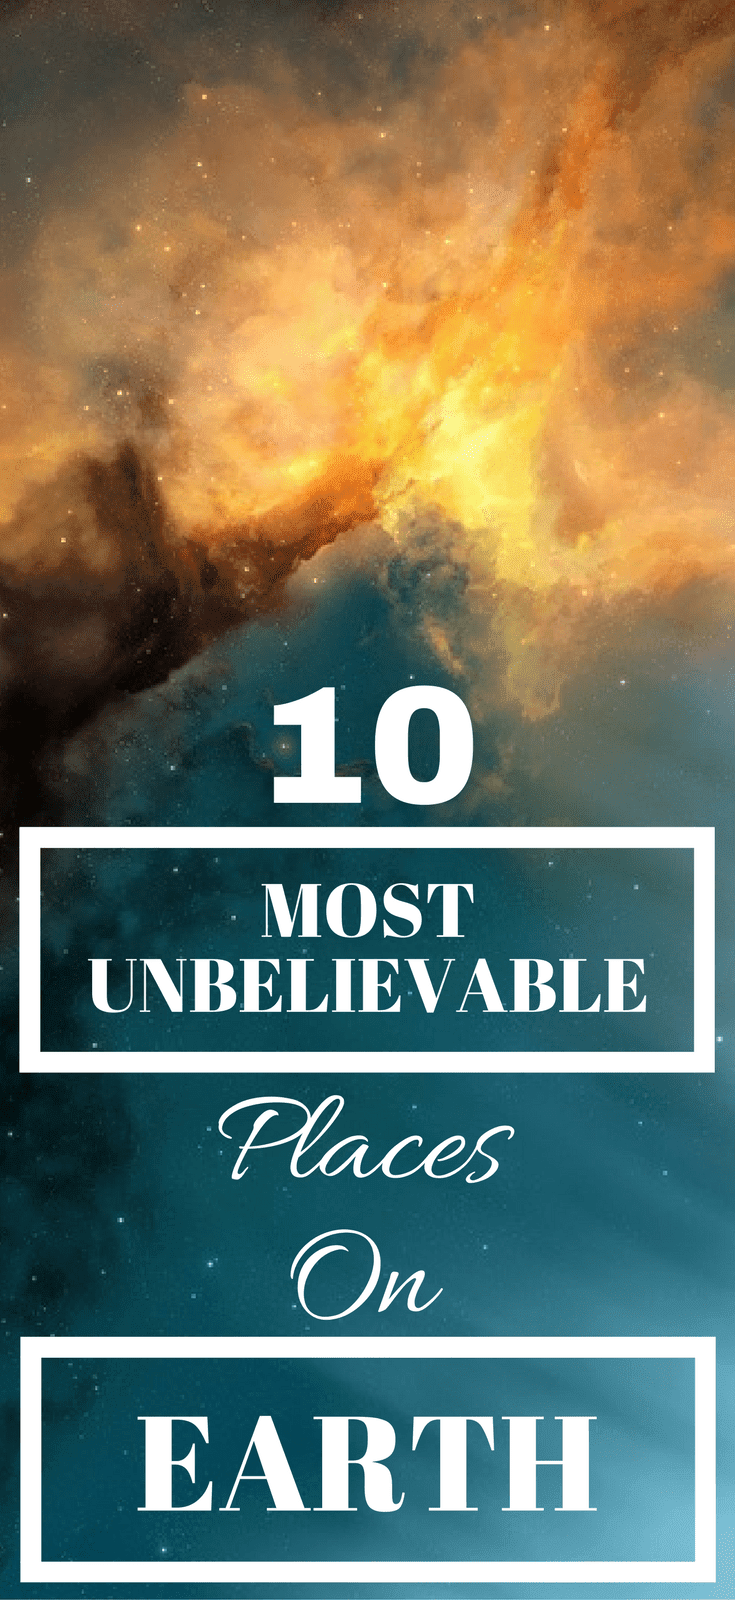 10 Most Unbelievable Places On Earth